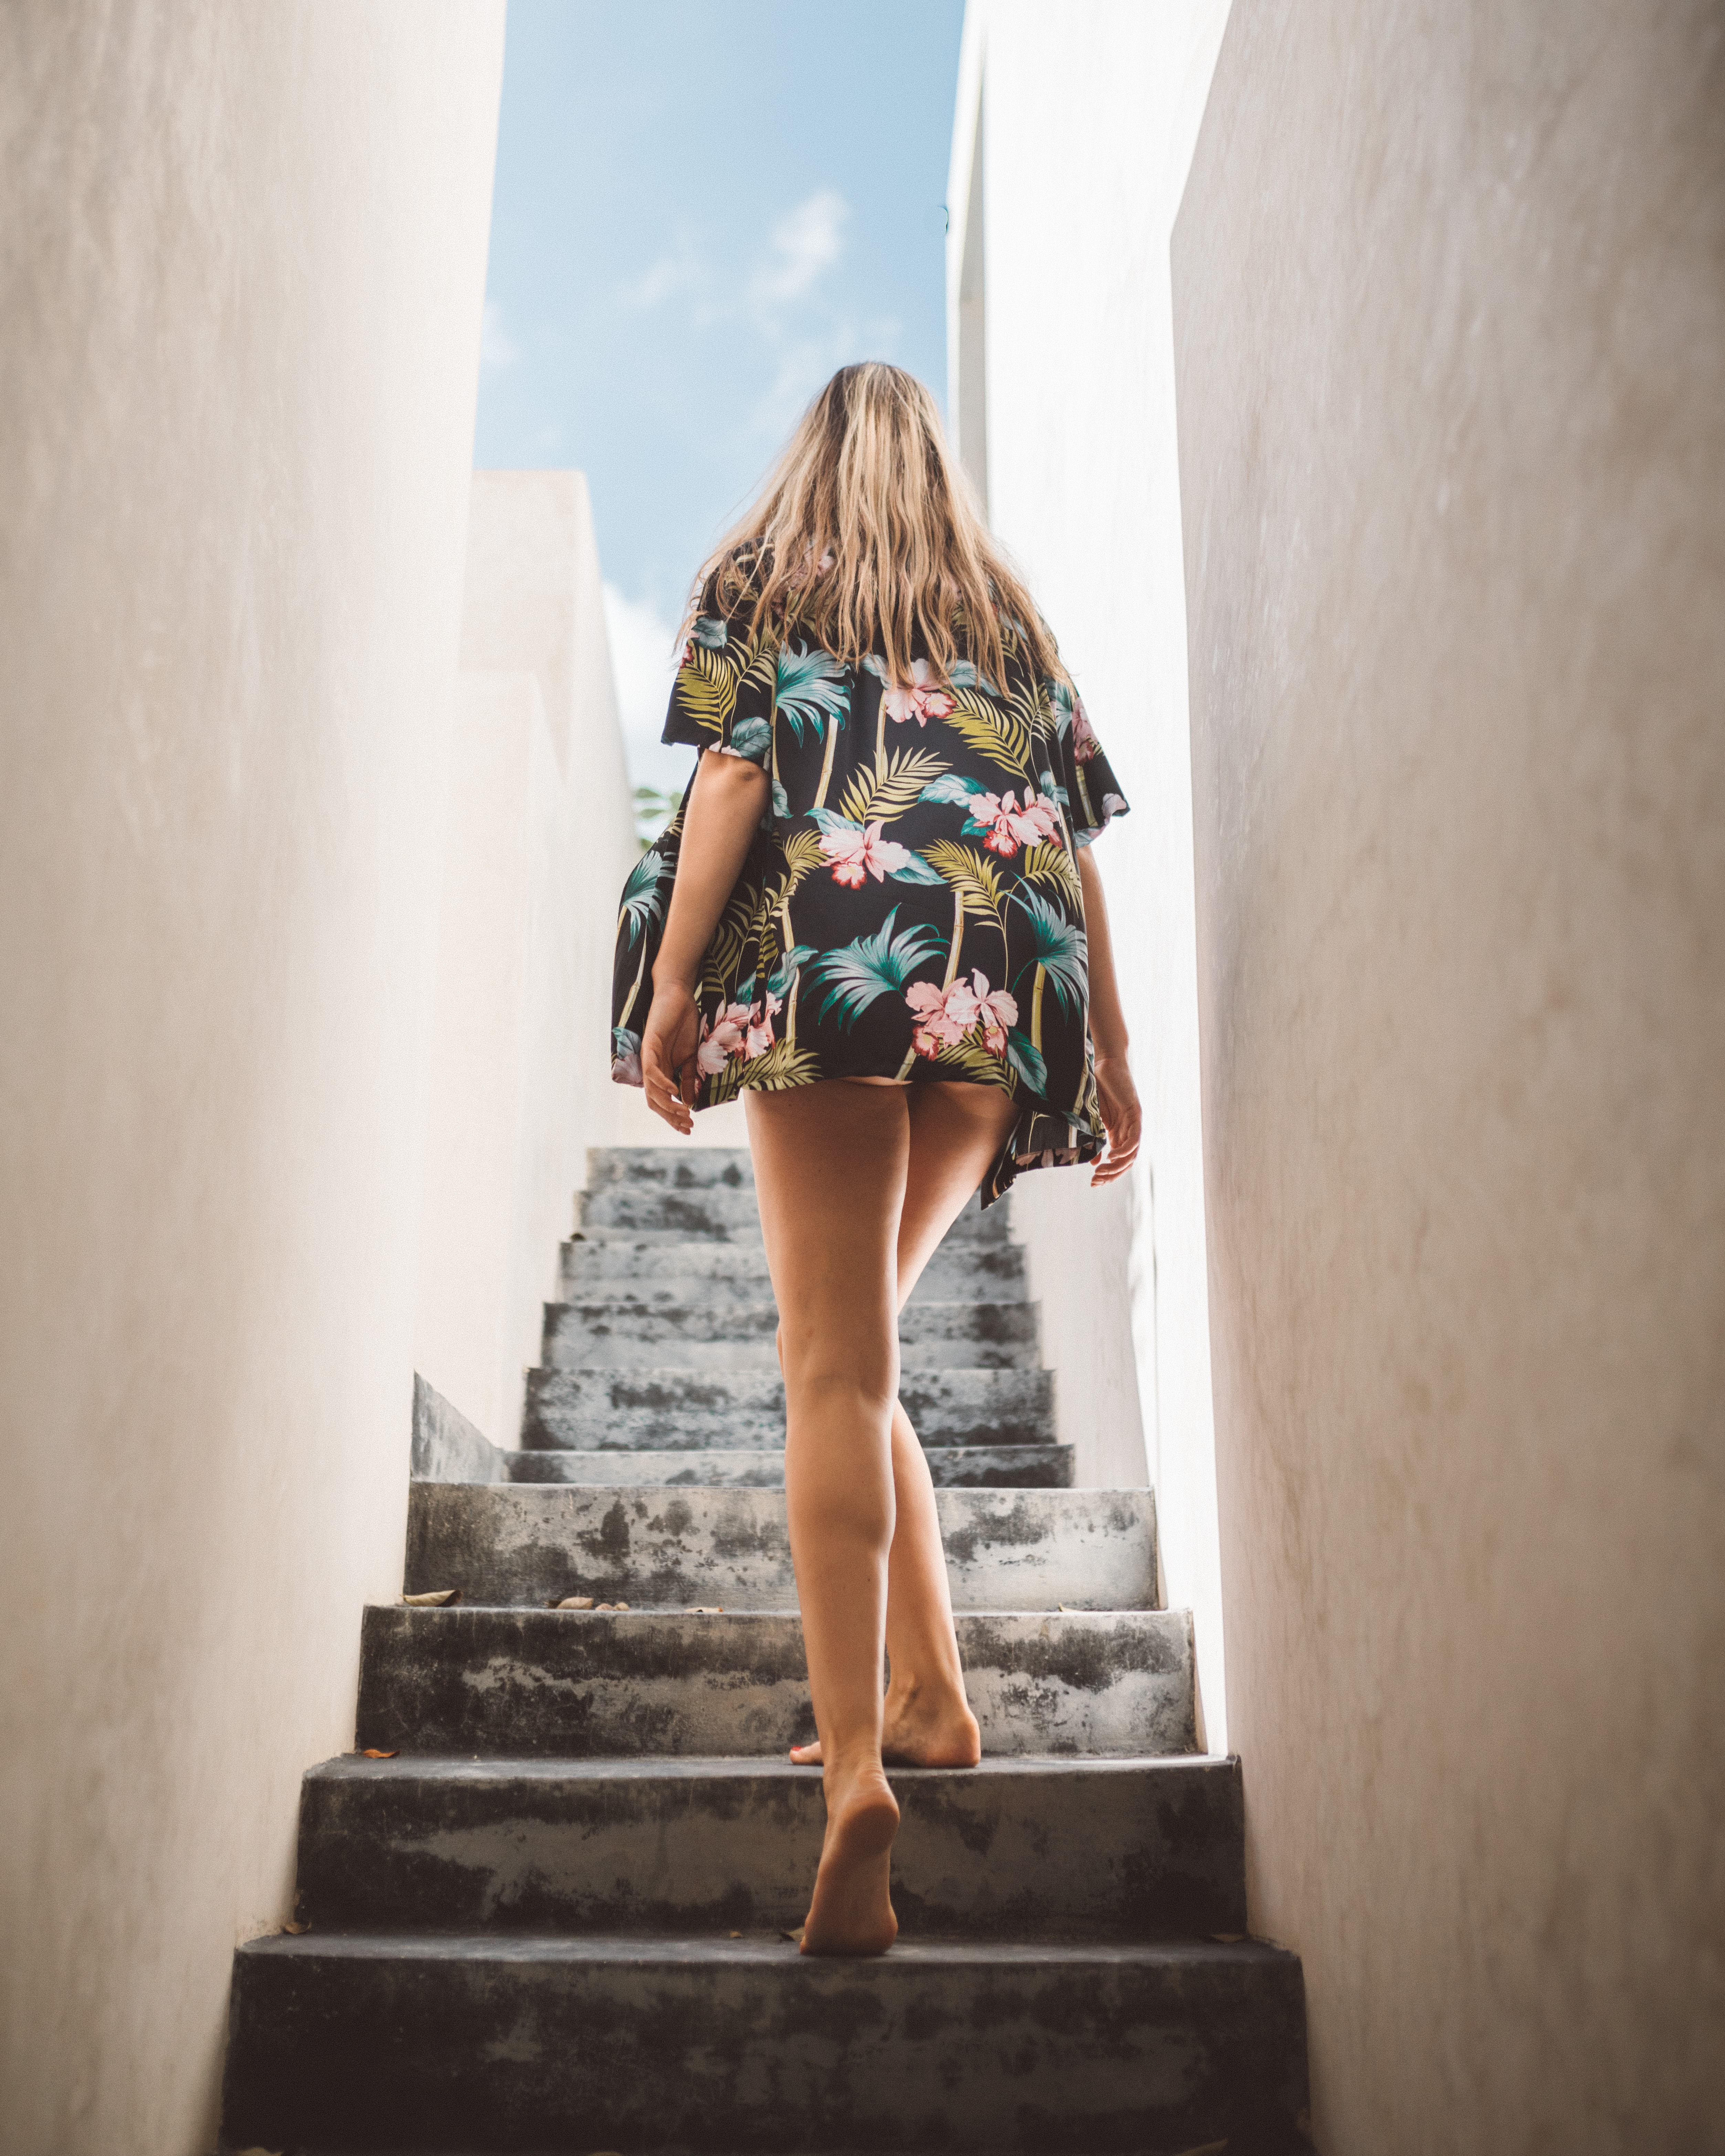 woman climbing on stair